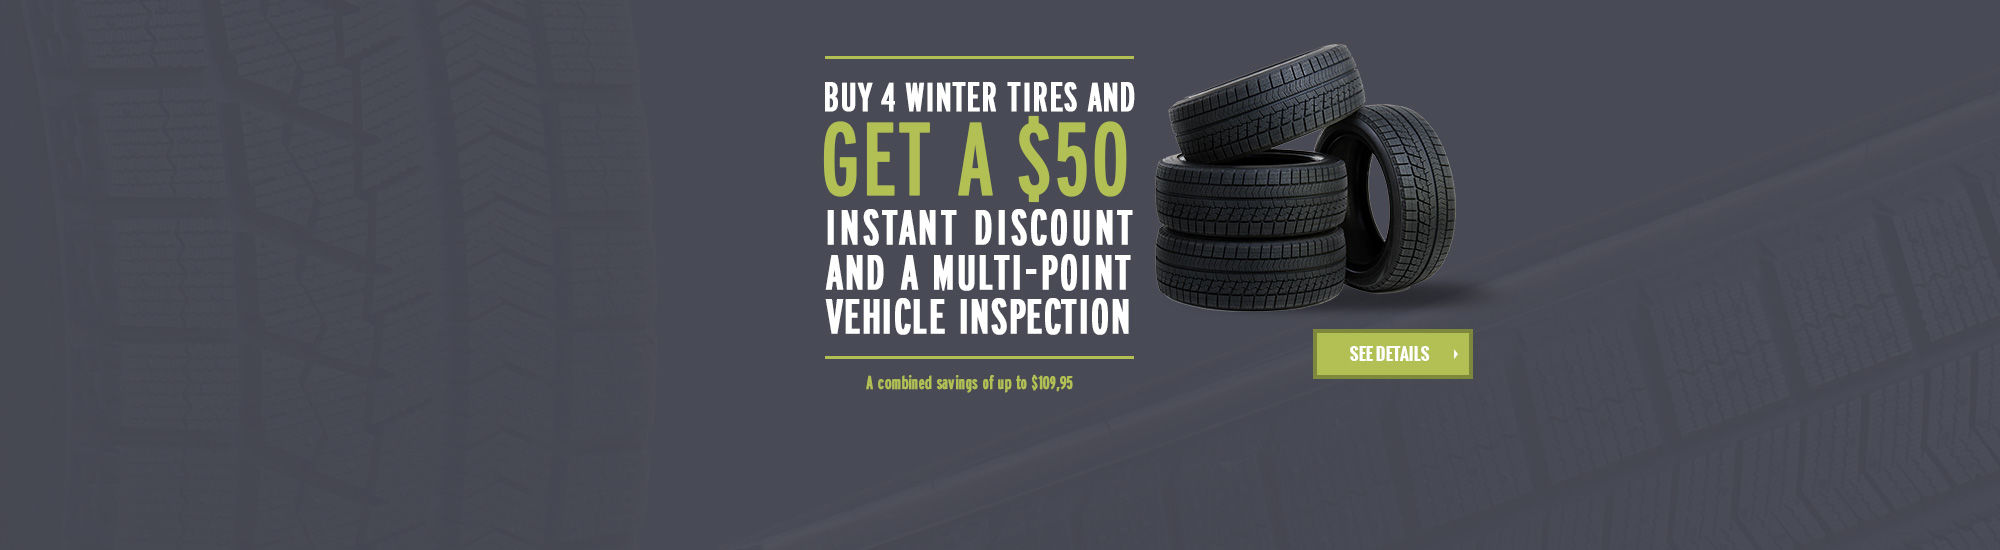 4 Winter Tires and Get a $50